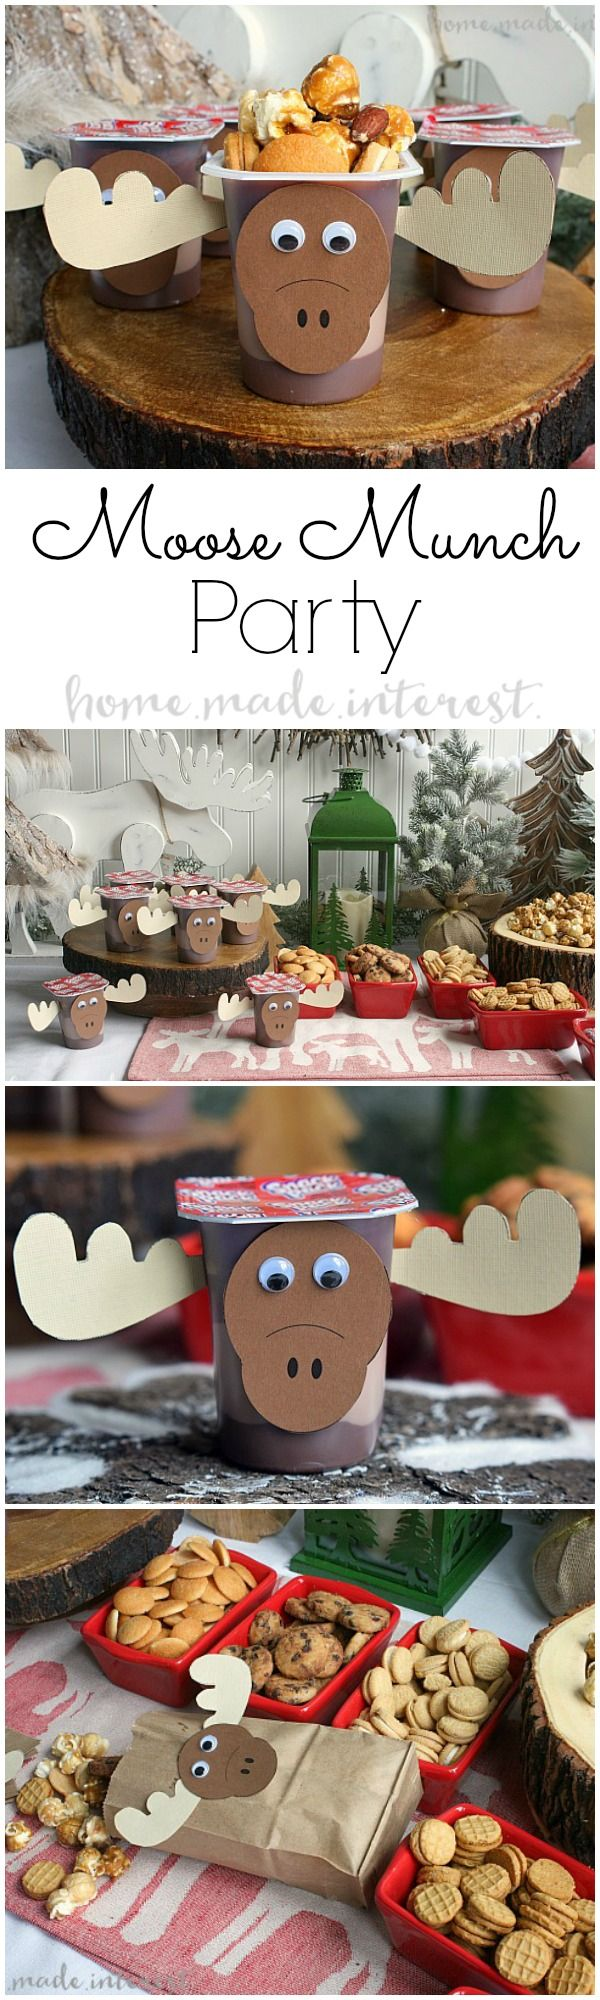 "This Moose Munch Holiday Party is such a fun theme for a holiday party where kids and adults can have a good time. Make your own Moose munch and load up your chocolate ""moose"" then dig in! We've even got a few moose printables to get you started. #SnackPackMixIns #CollectiveBias #ad"